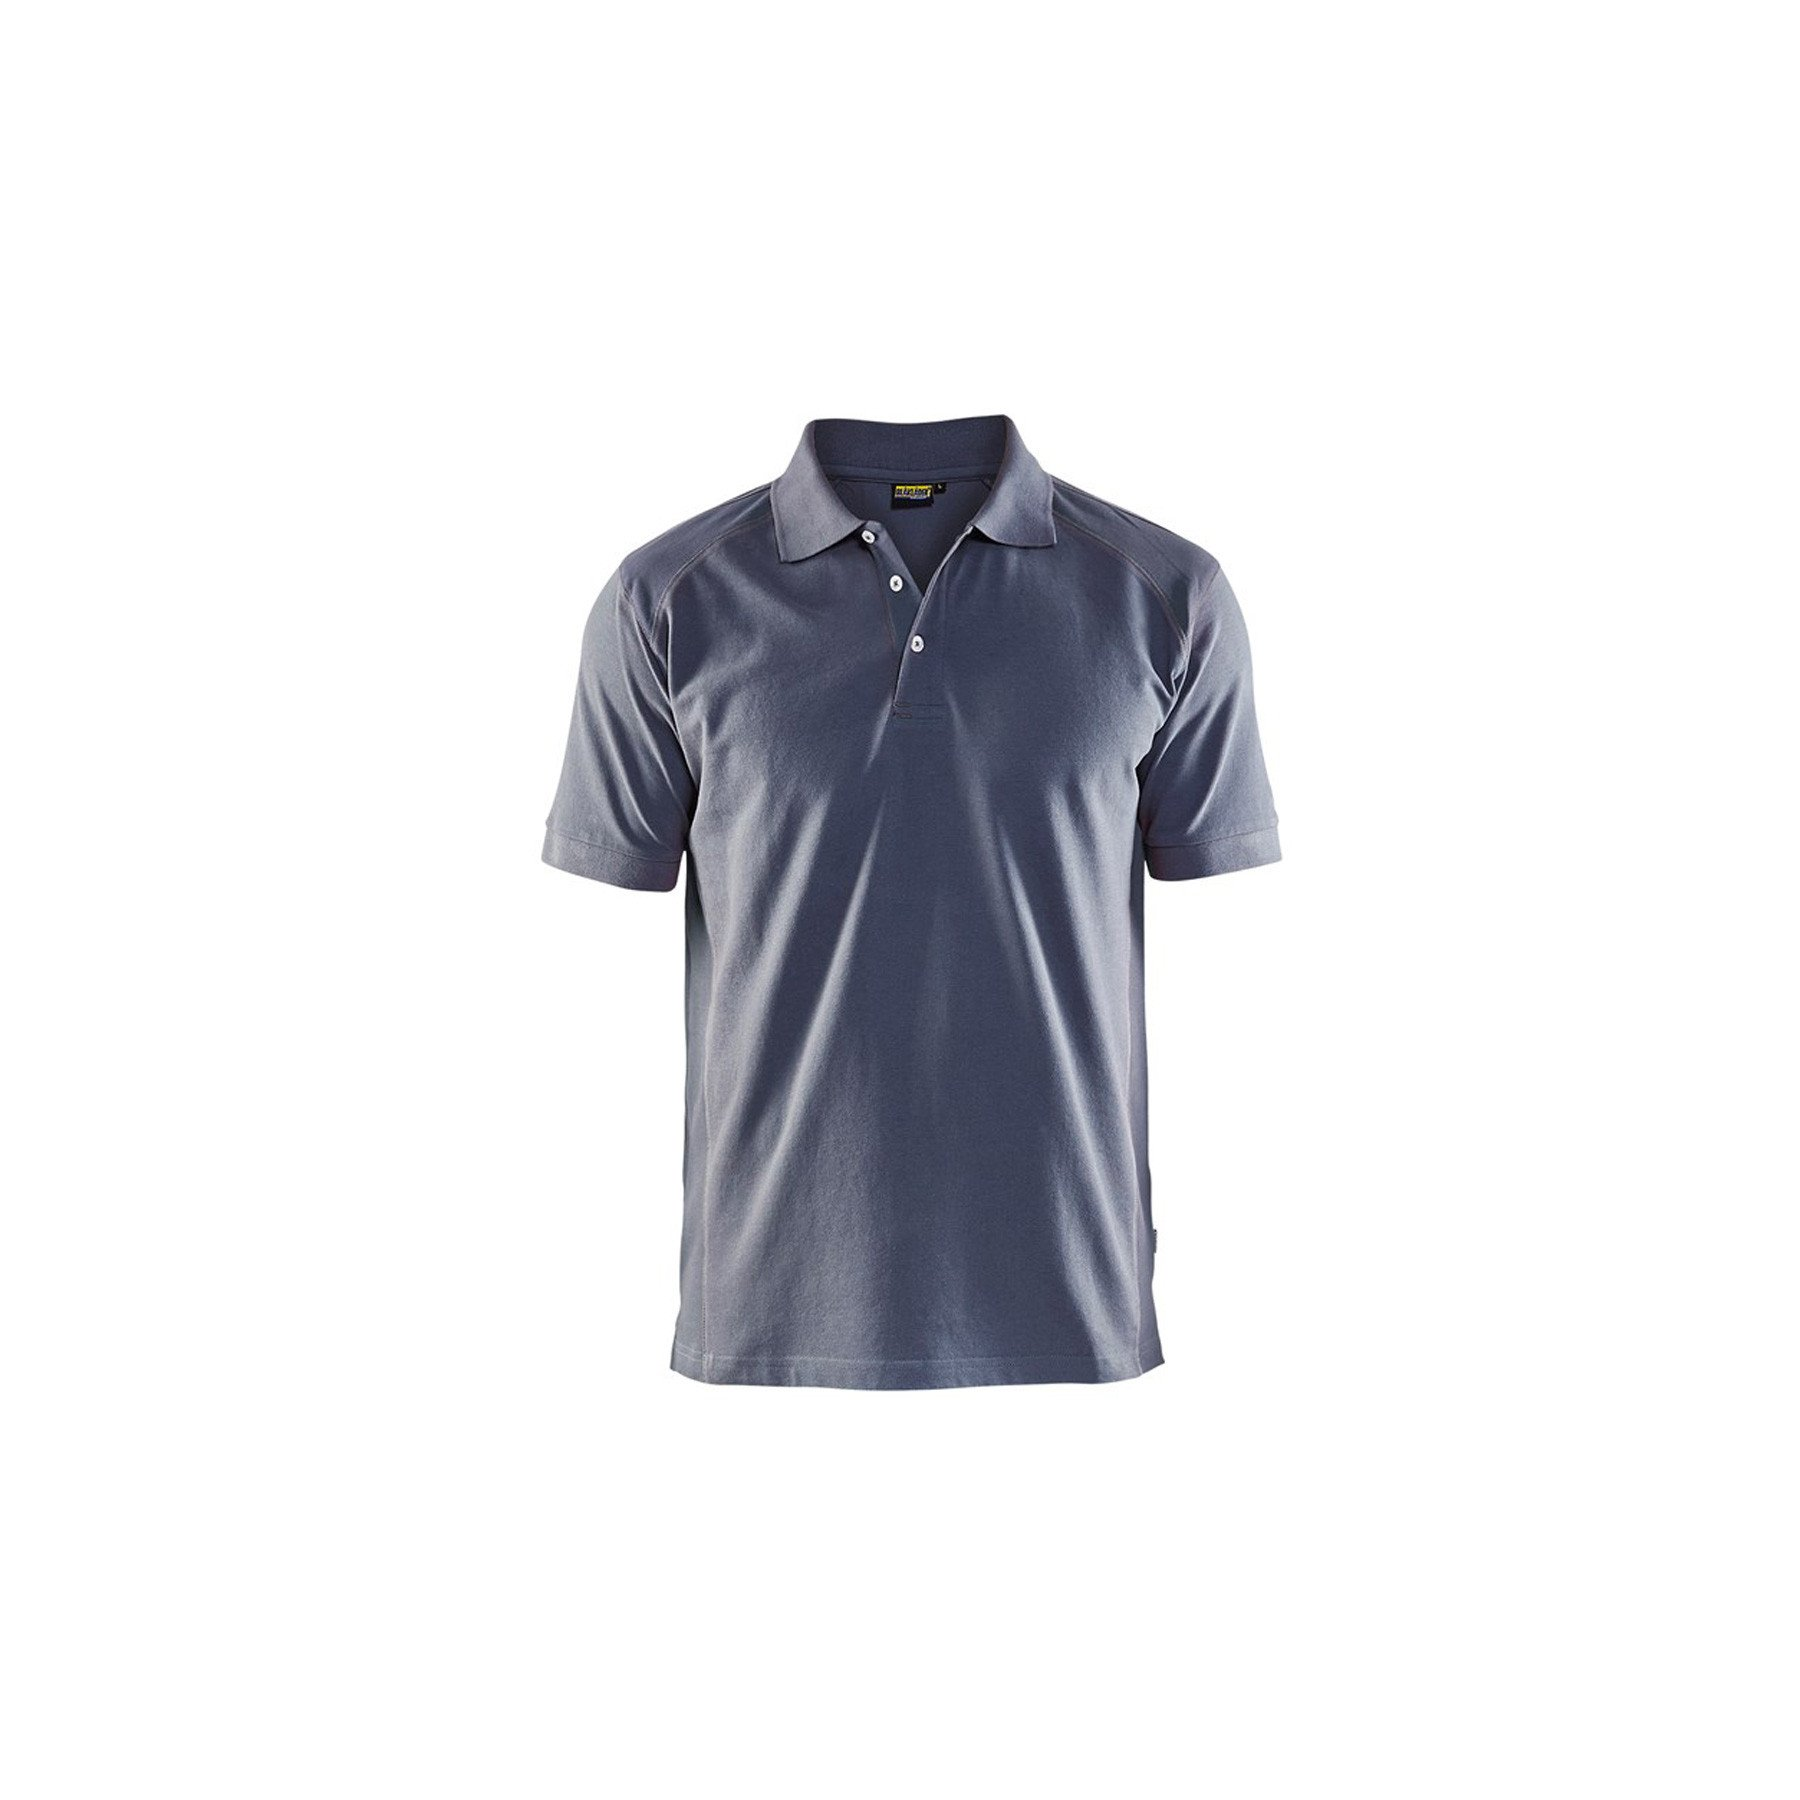 Polo Blaklader maille piqué Homme - Gris